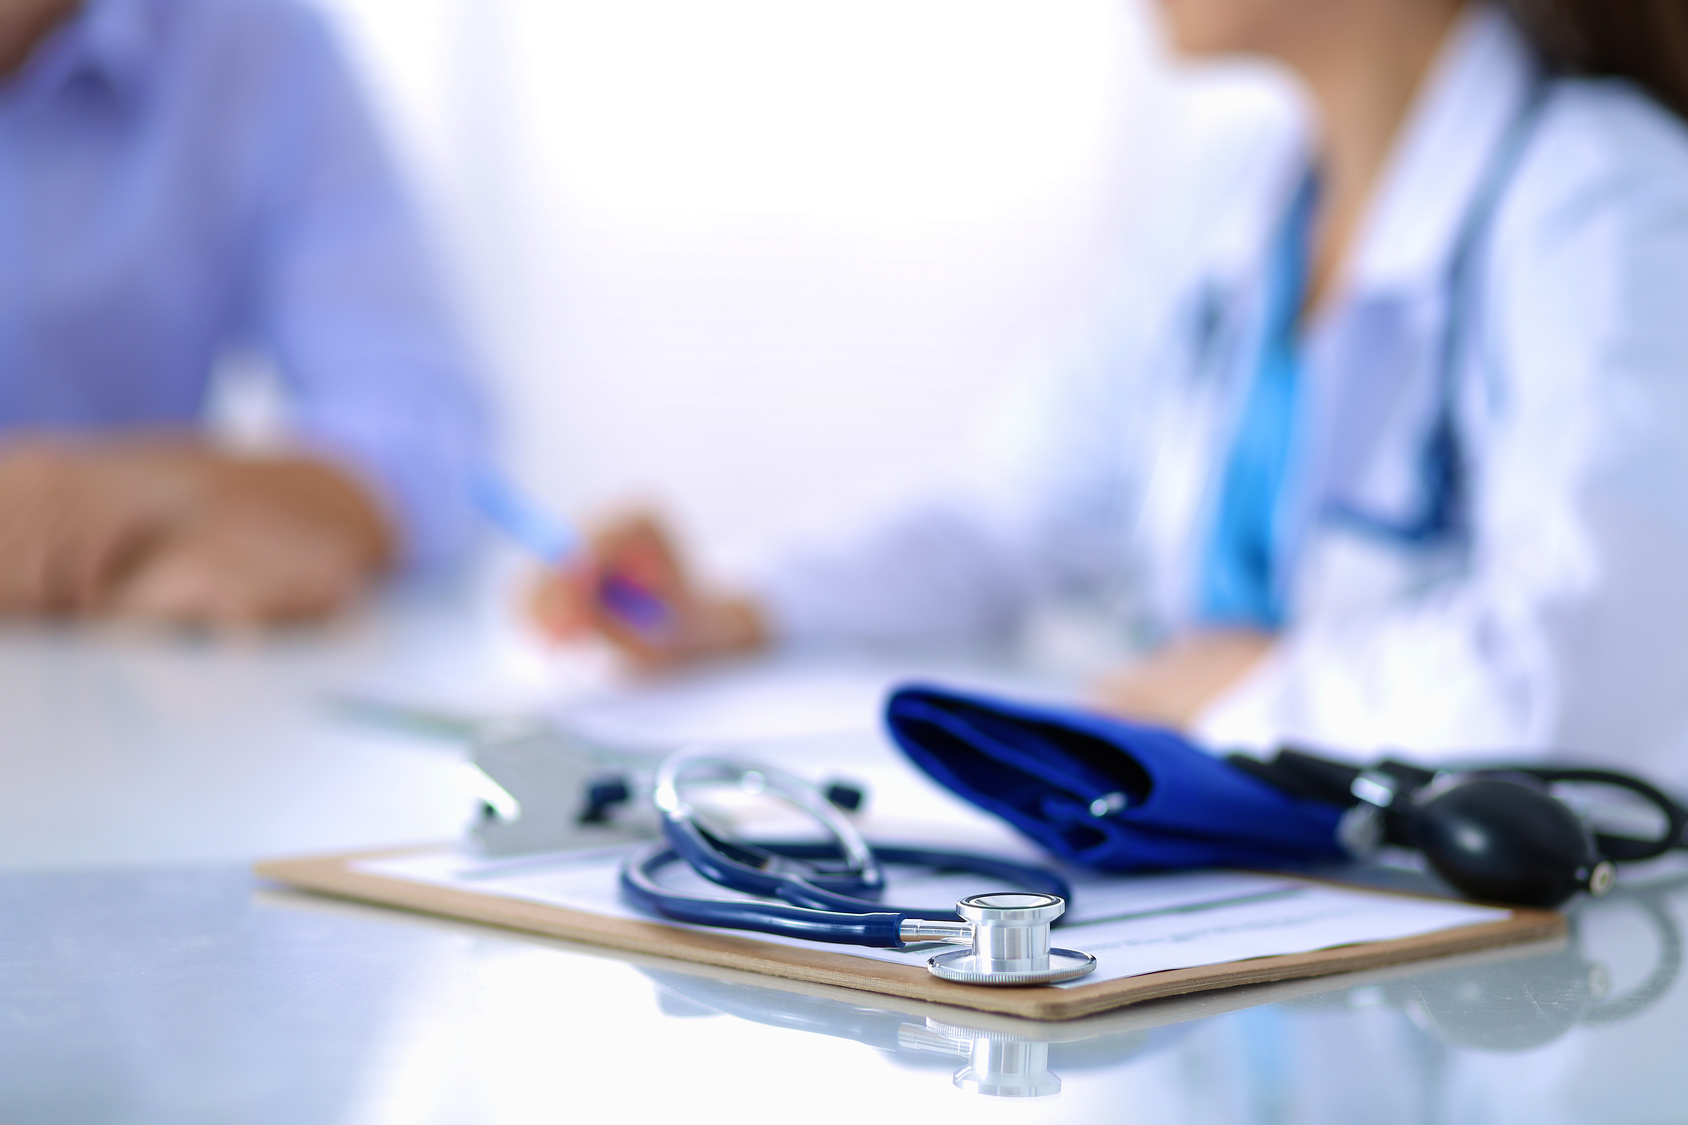 How Leveraging Patient Engagement Increases Loyalty More Than Traditional Marketing